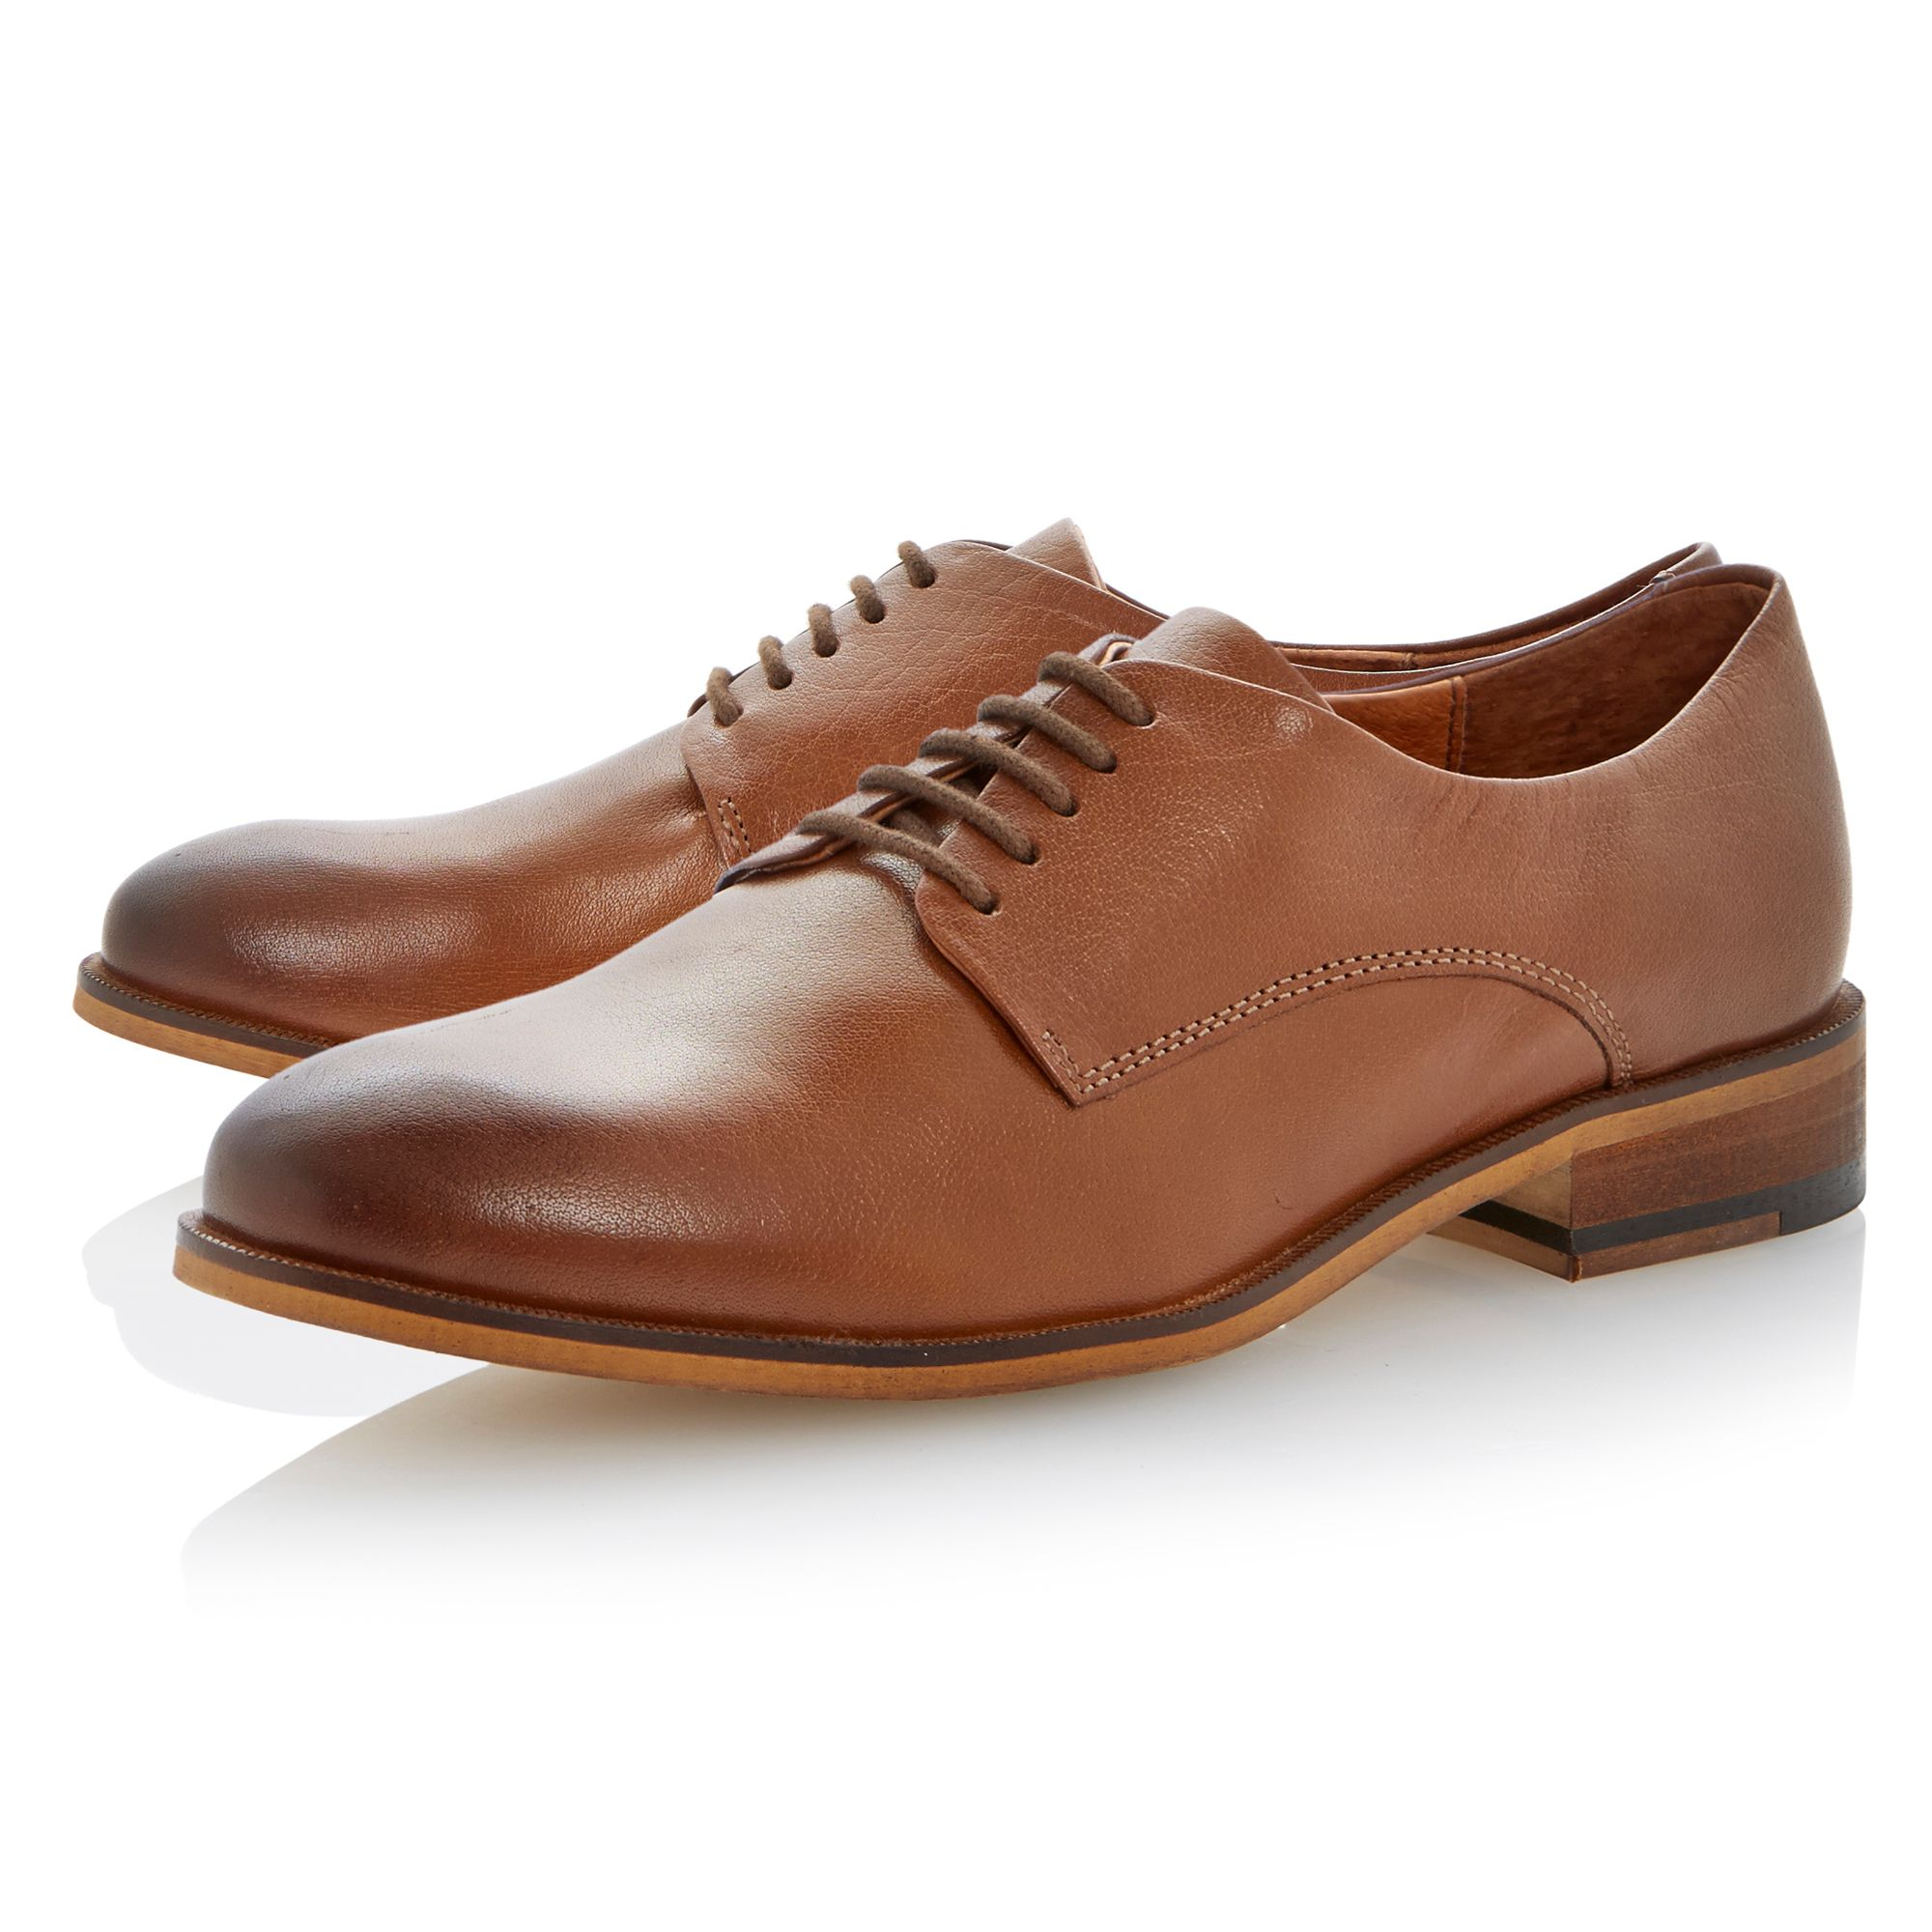 Latter slick lace up shoes